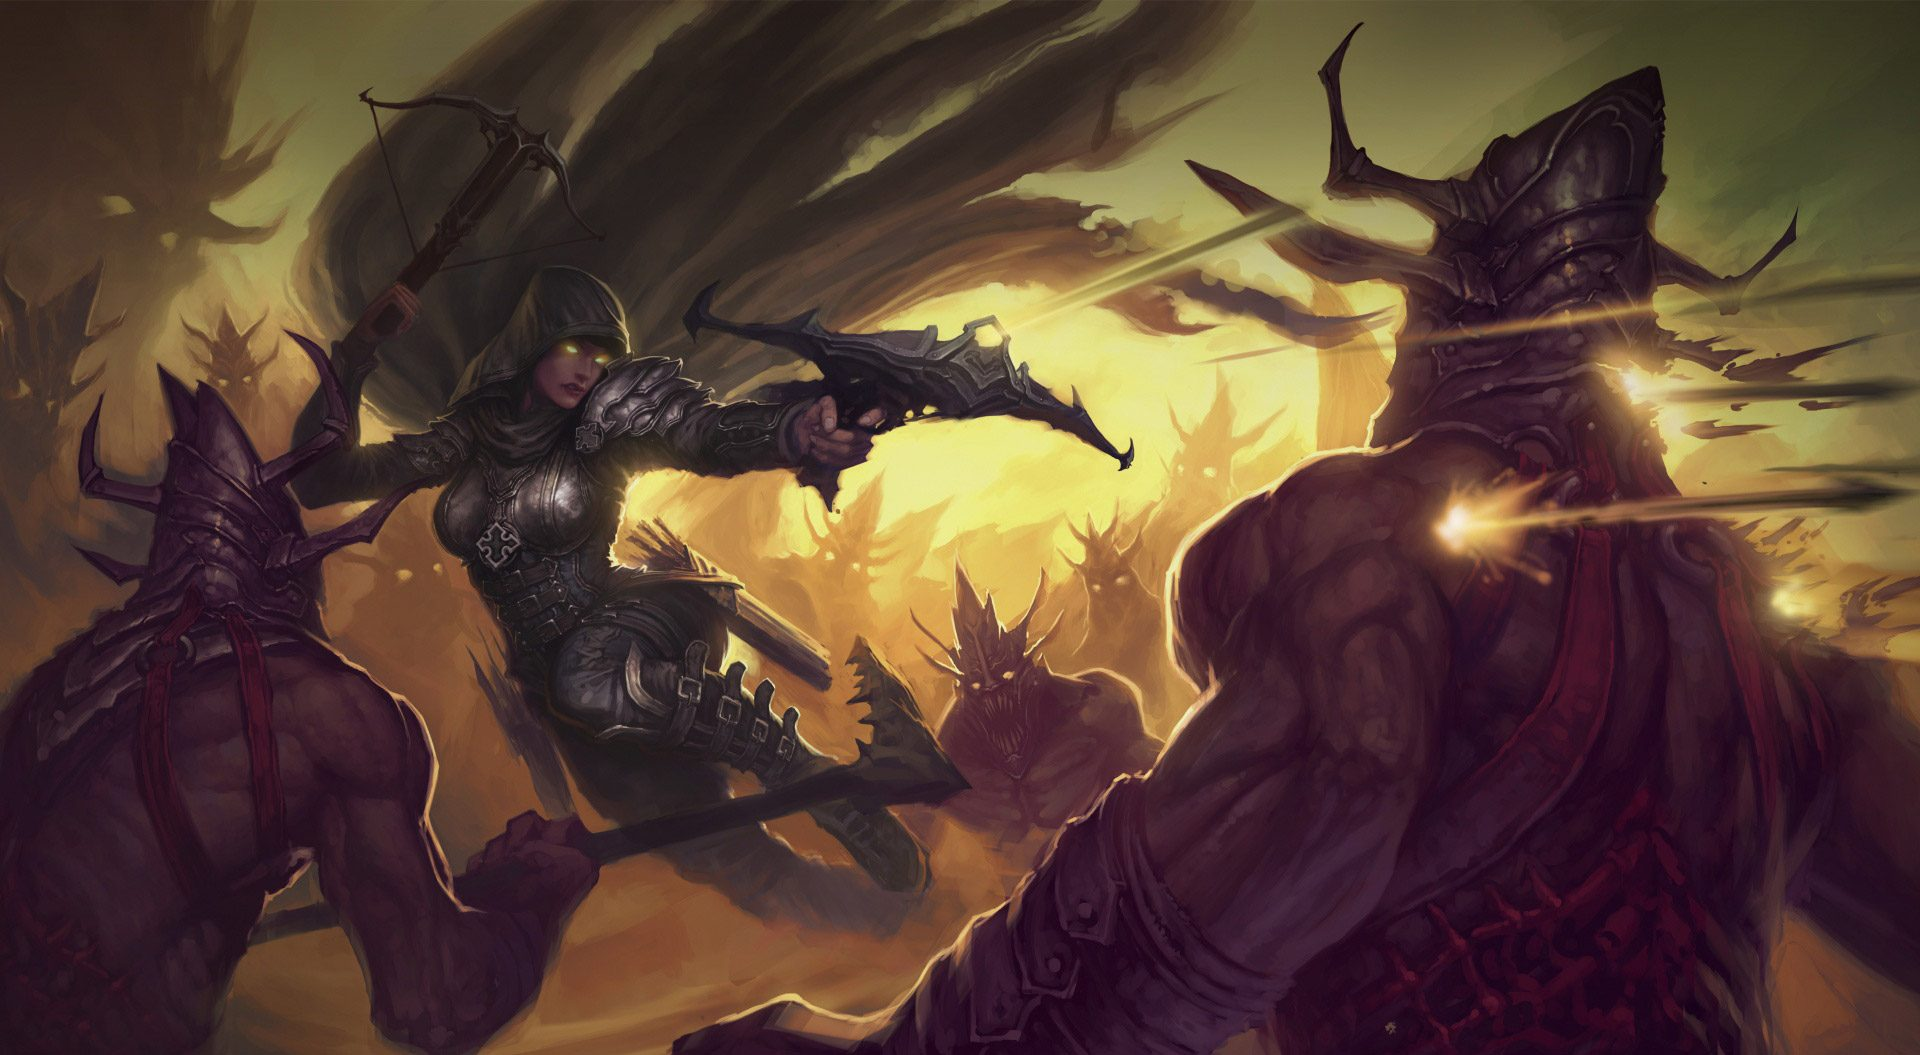 Diablo: Immortal feels like a Diablo game, just not one that's for me